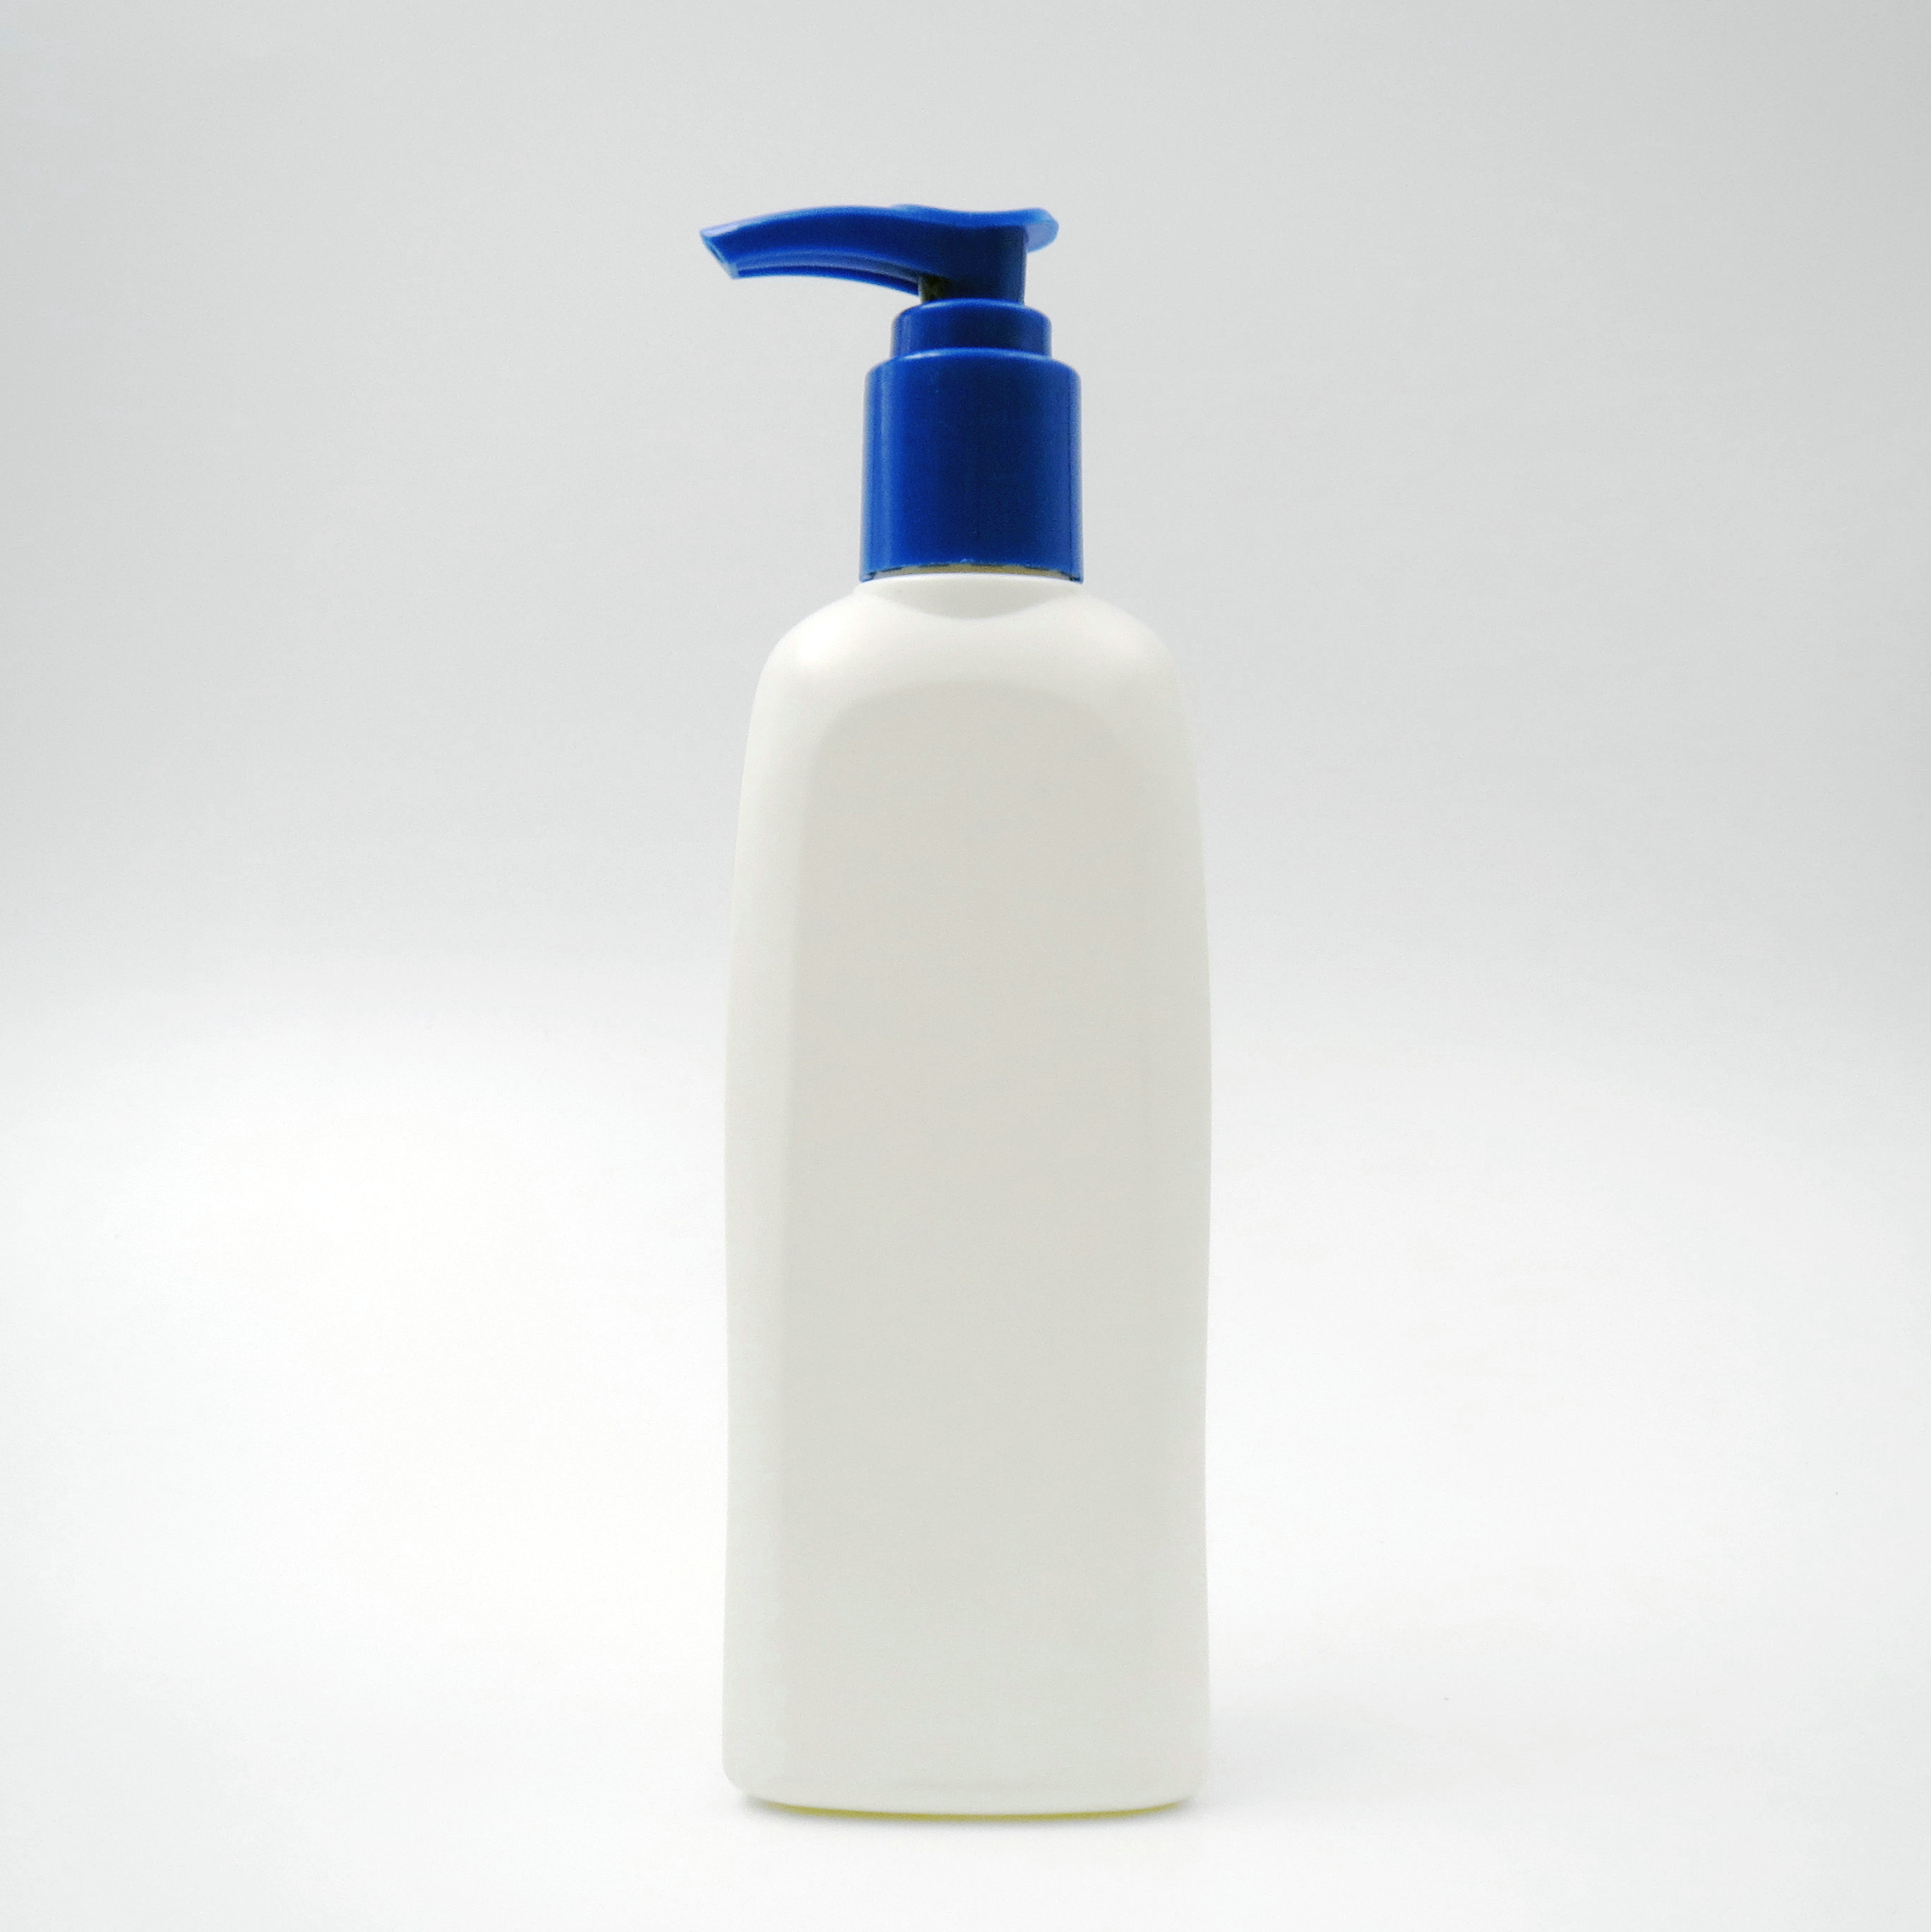 200ml High quality plastic bottle for shampoo/shower gel with lotion pump